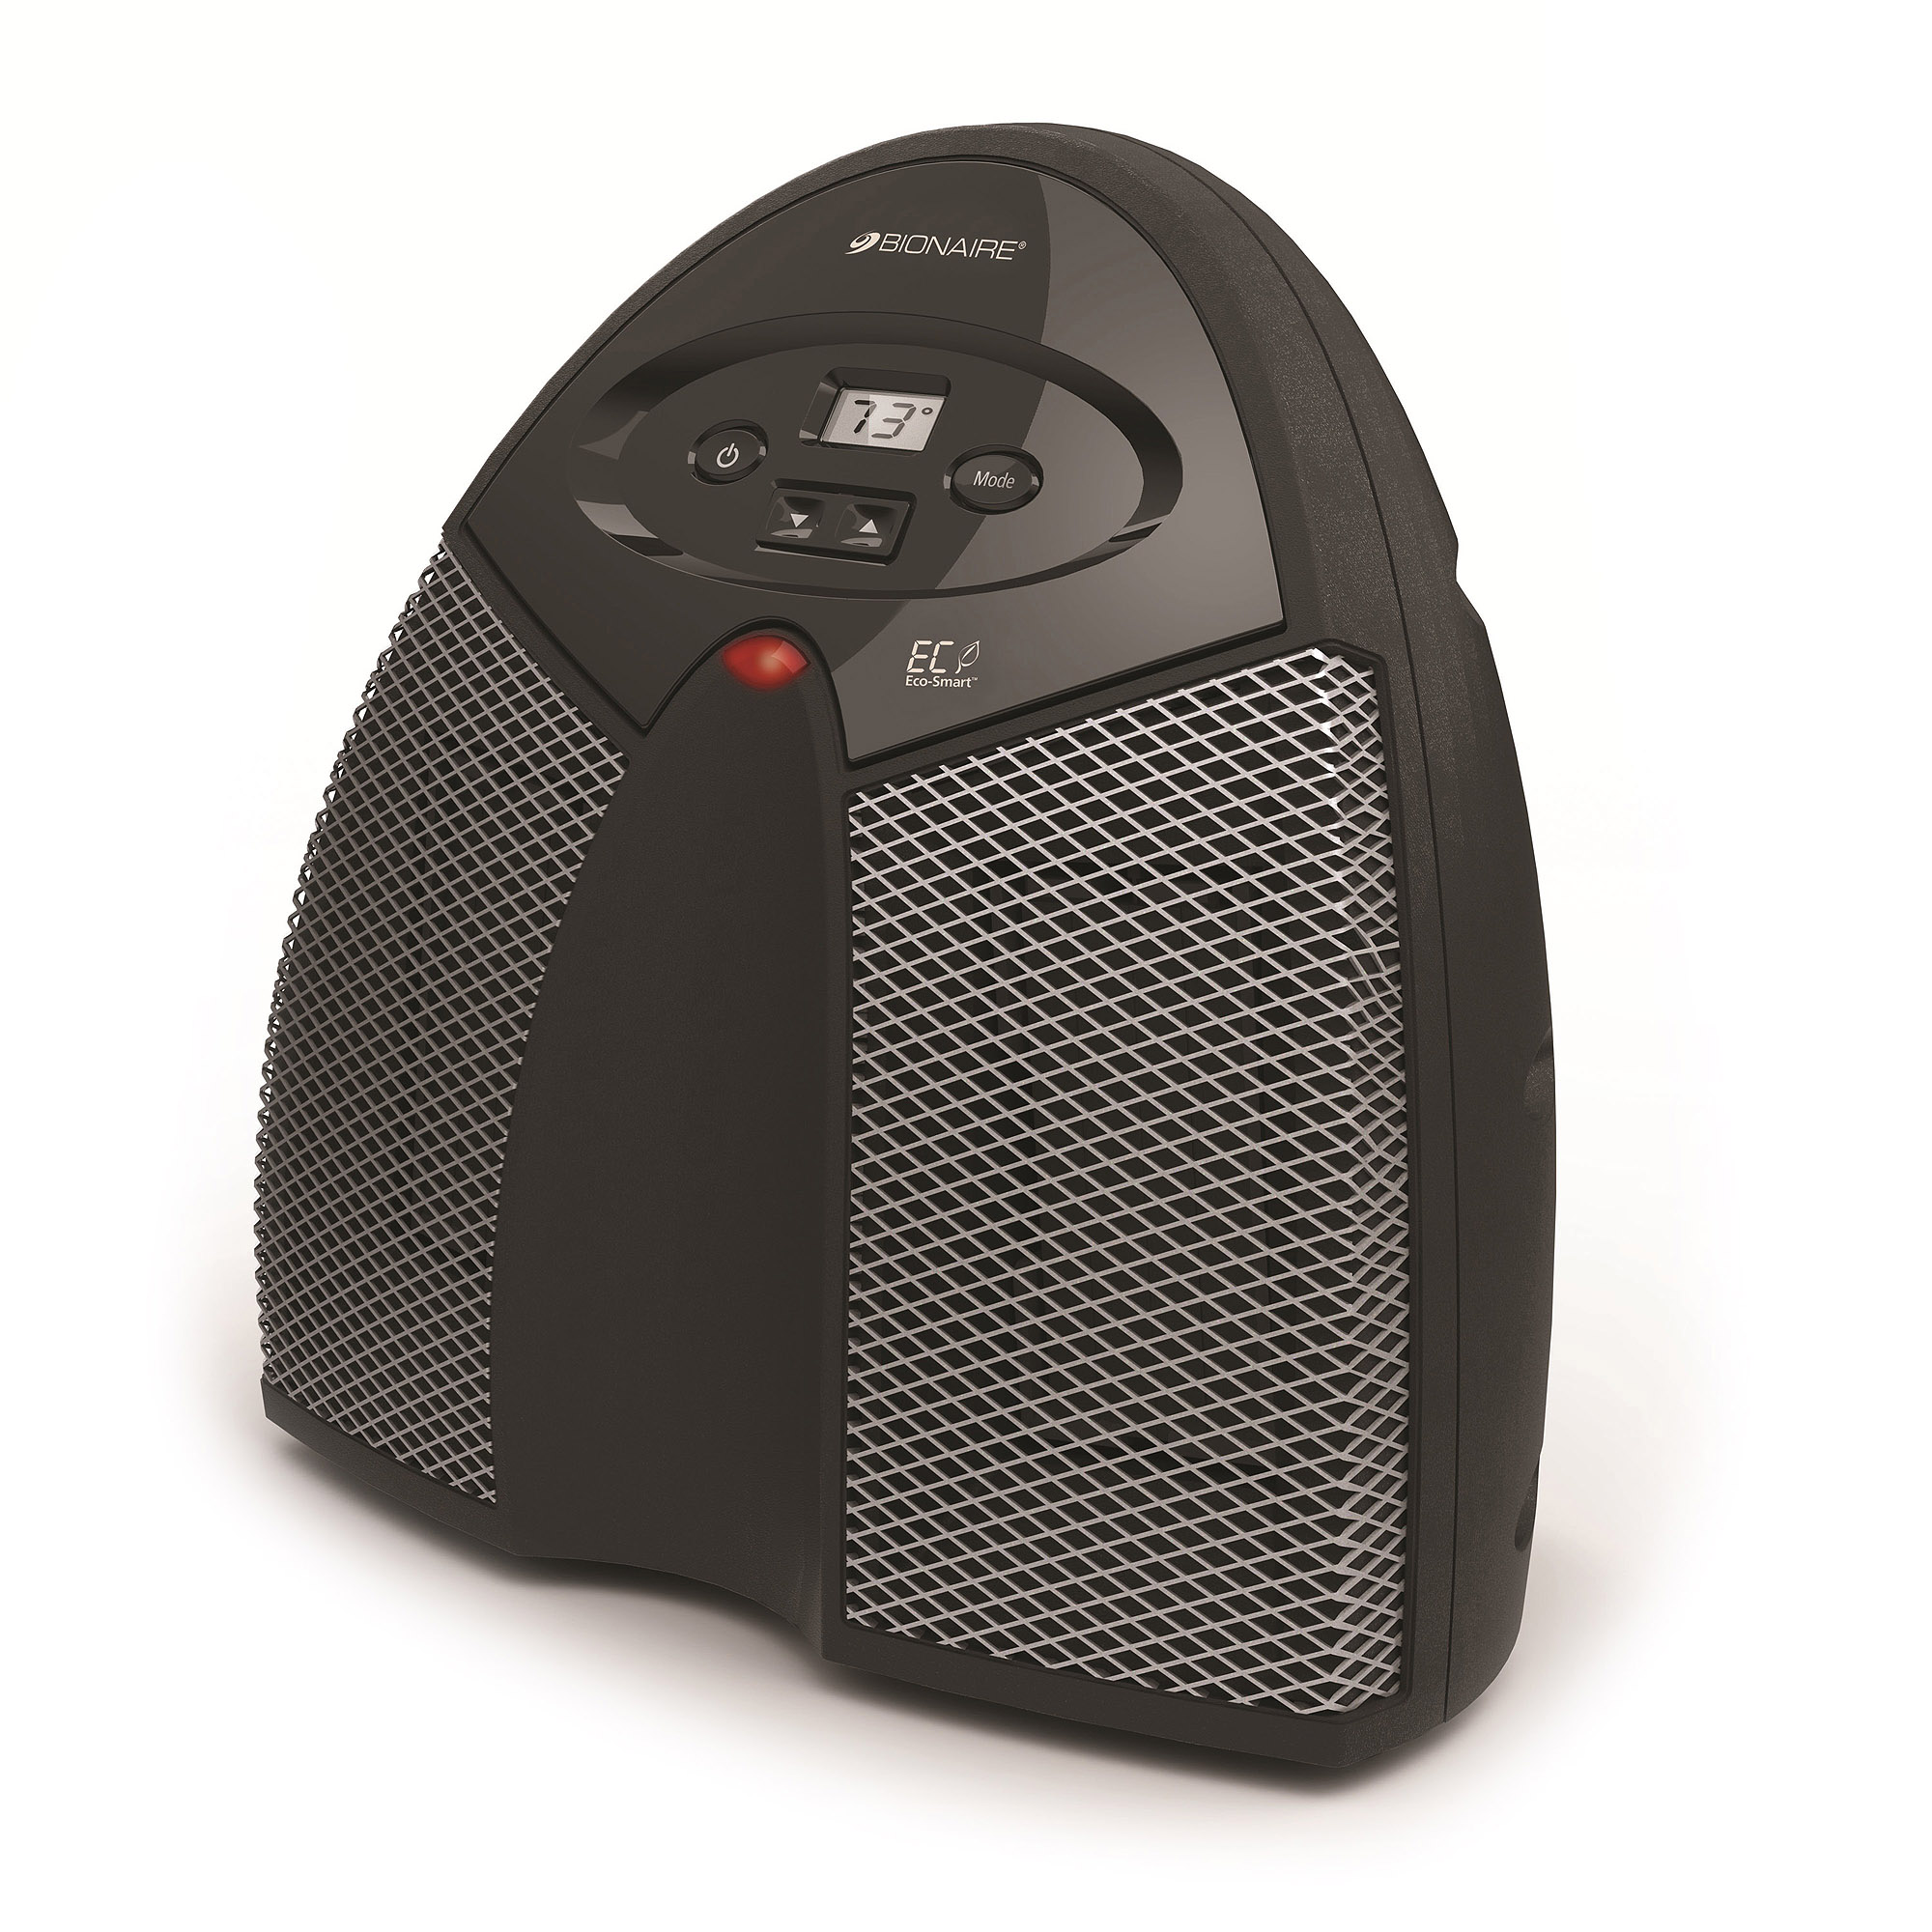 Bionaire Twin Ceramic Heater, Black